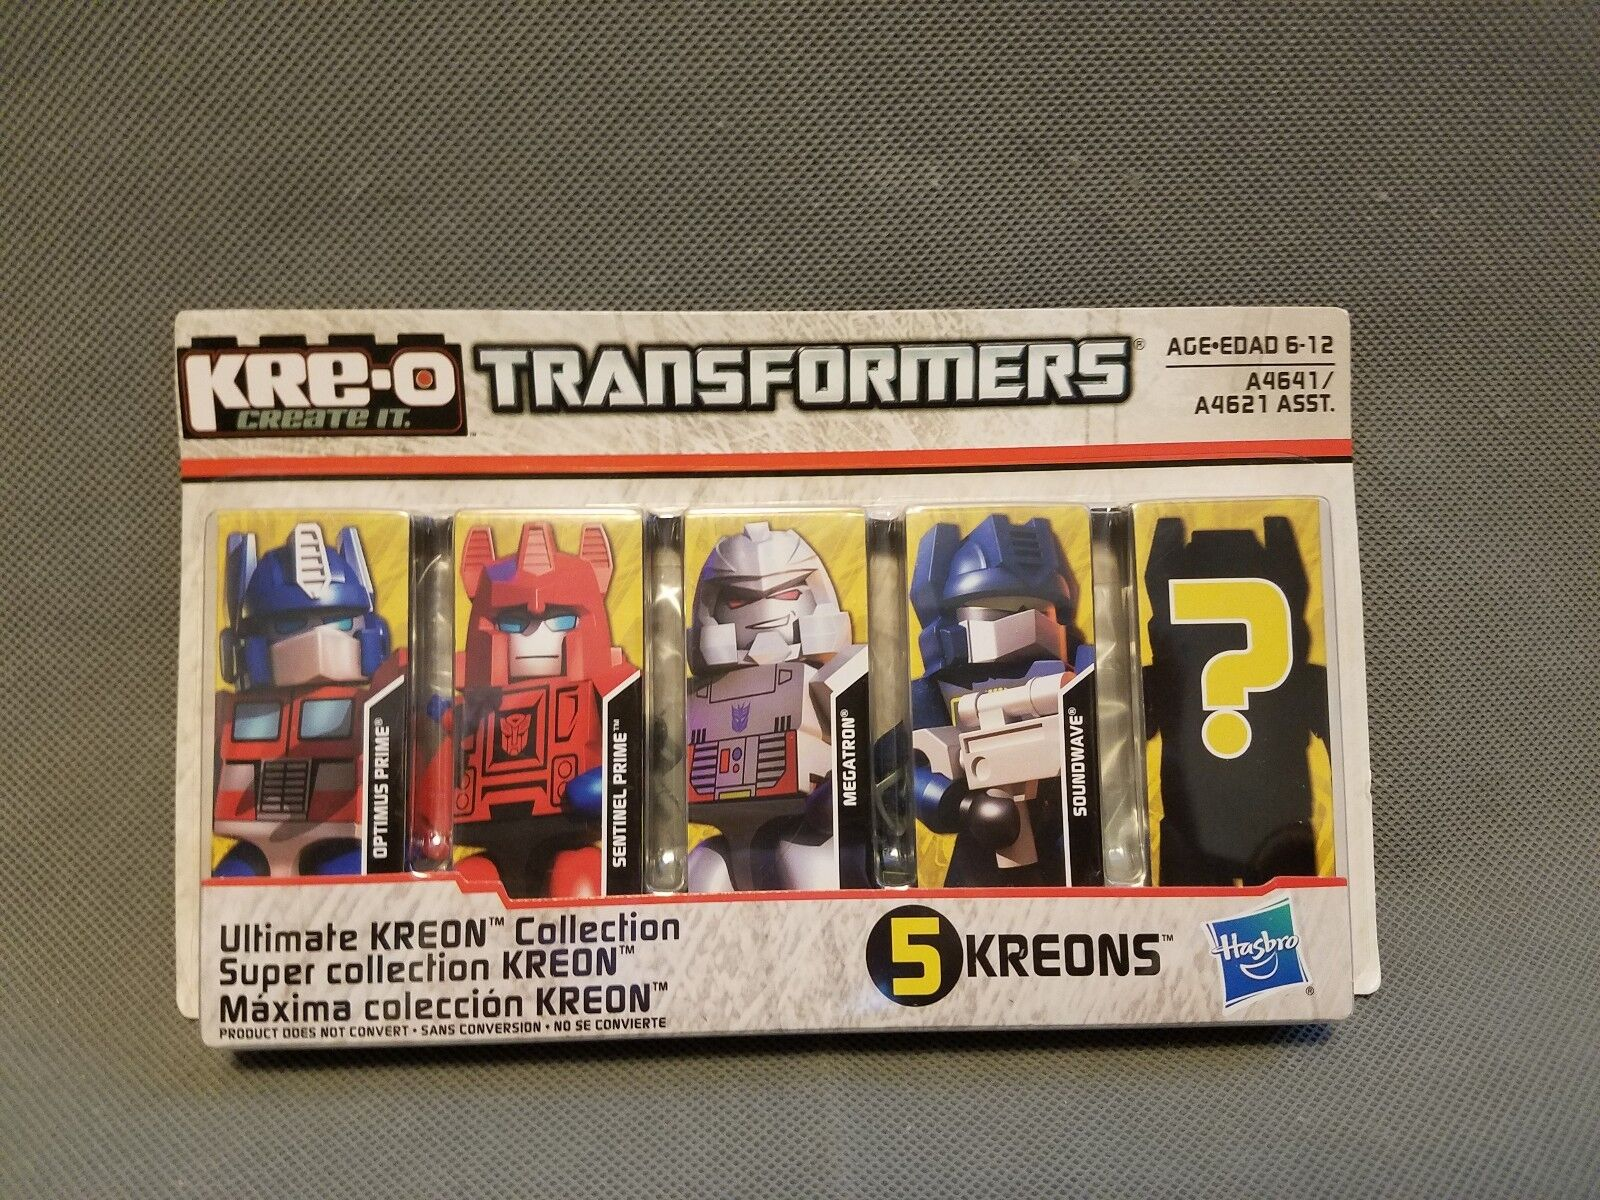 Kre-o transformatoren ultimative kreon sammlung w   w  optimus prime a4641 e3ad63